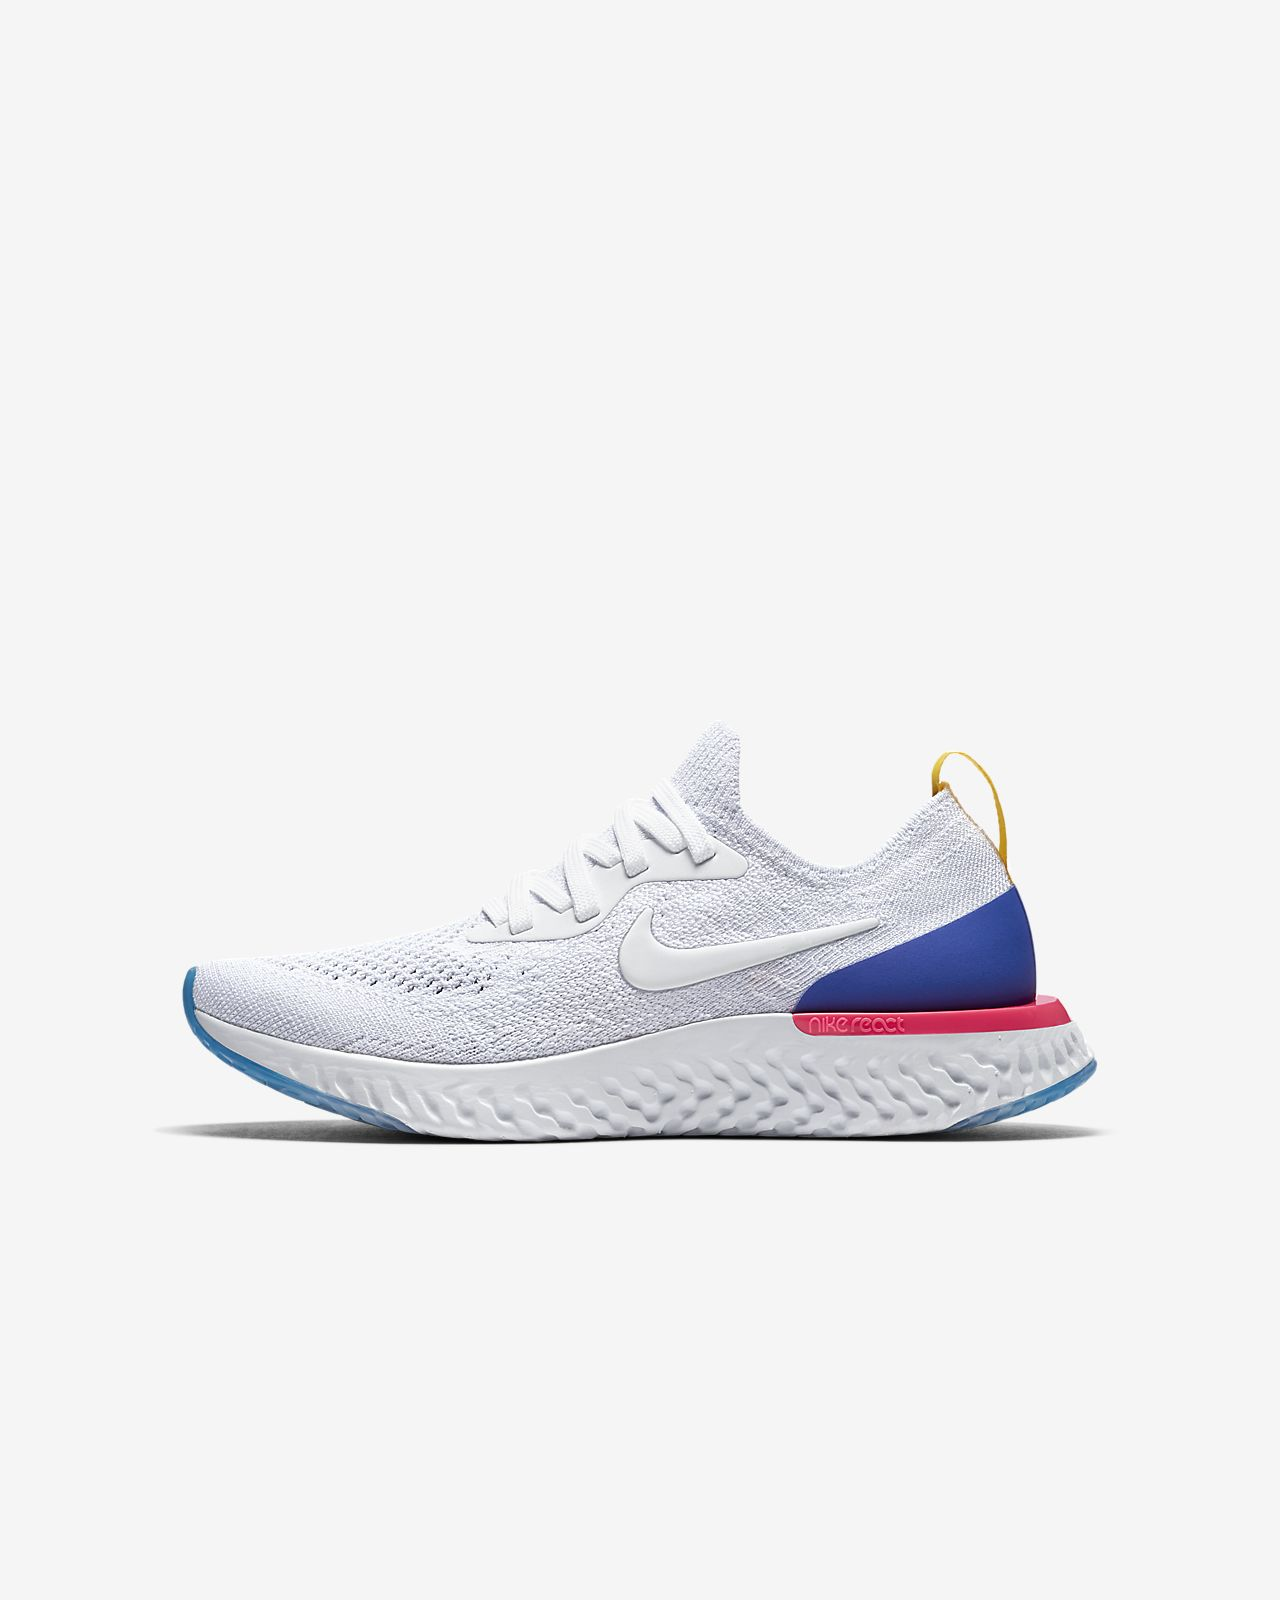 53402549e1e10 ... usa nike epic react flyknit older kids running shoe ec9c2 82882